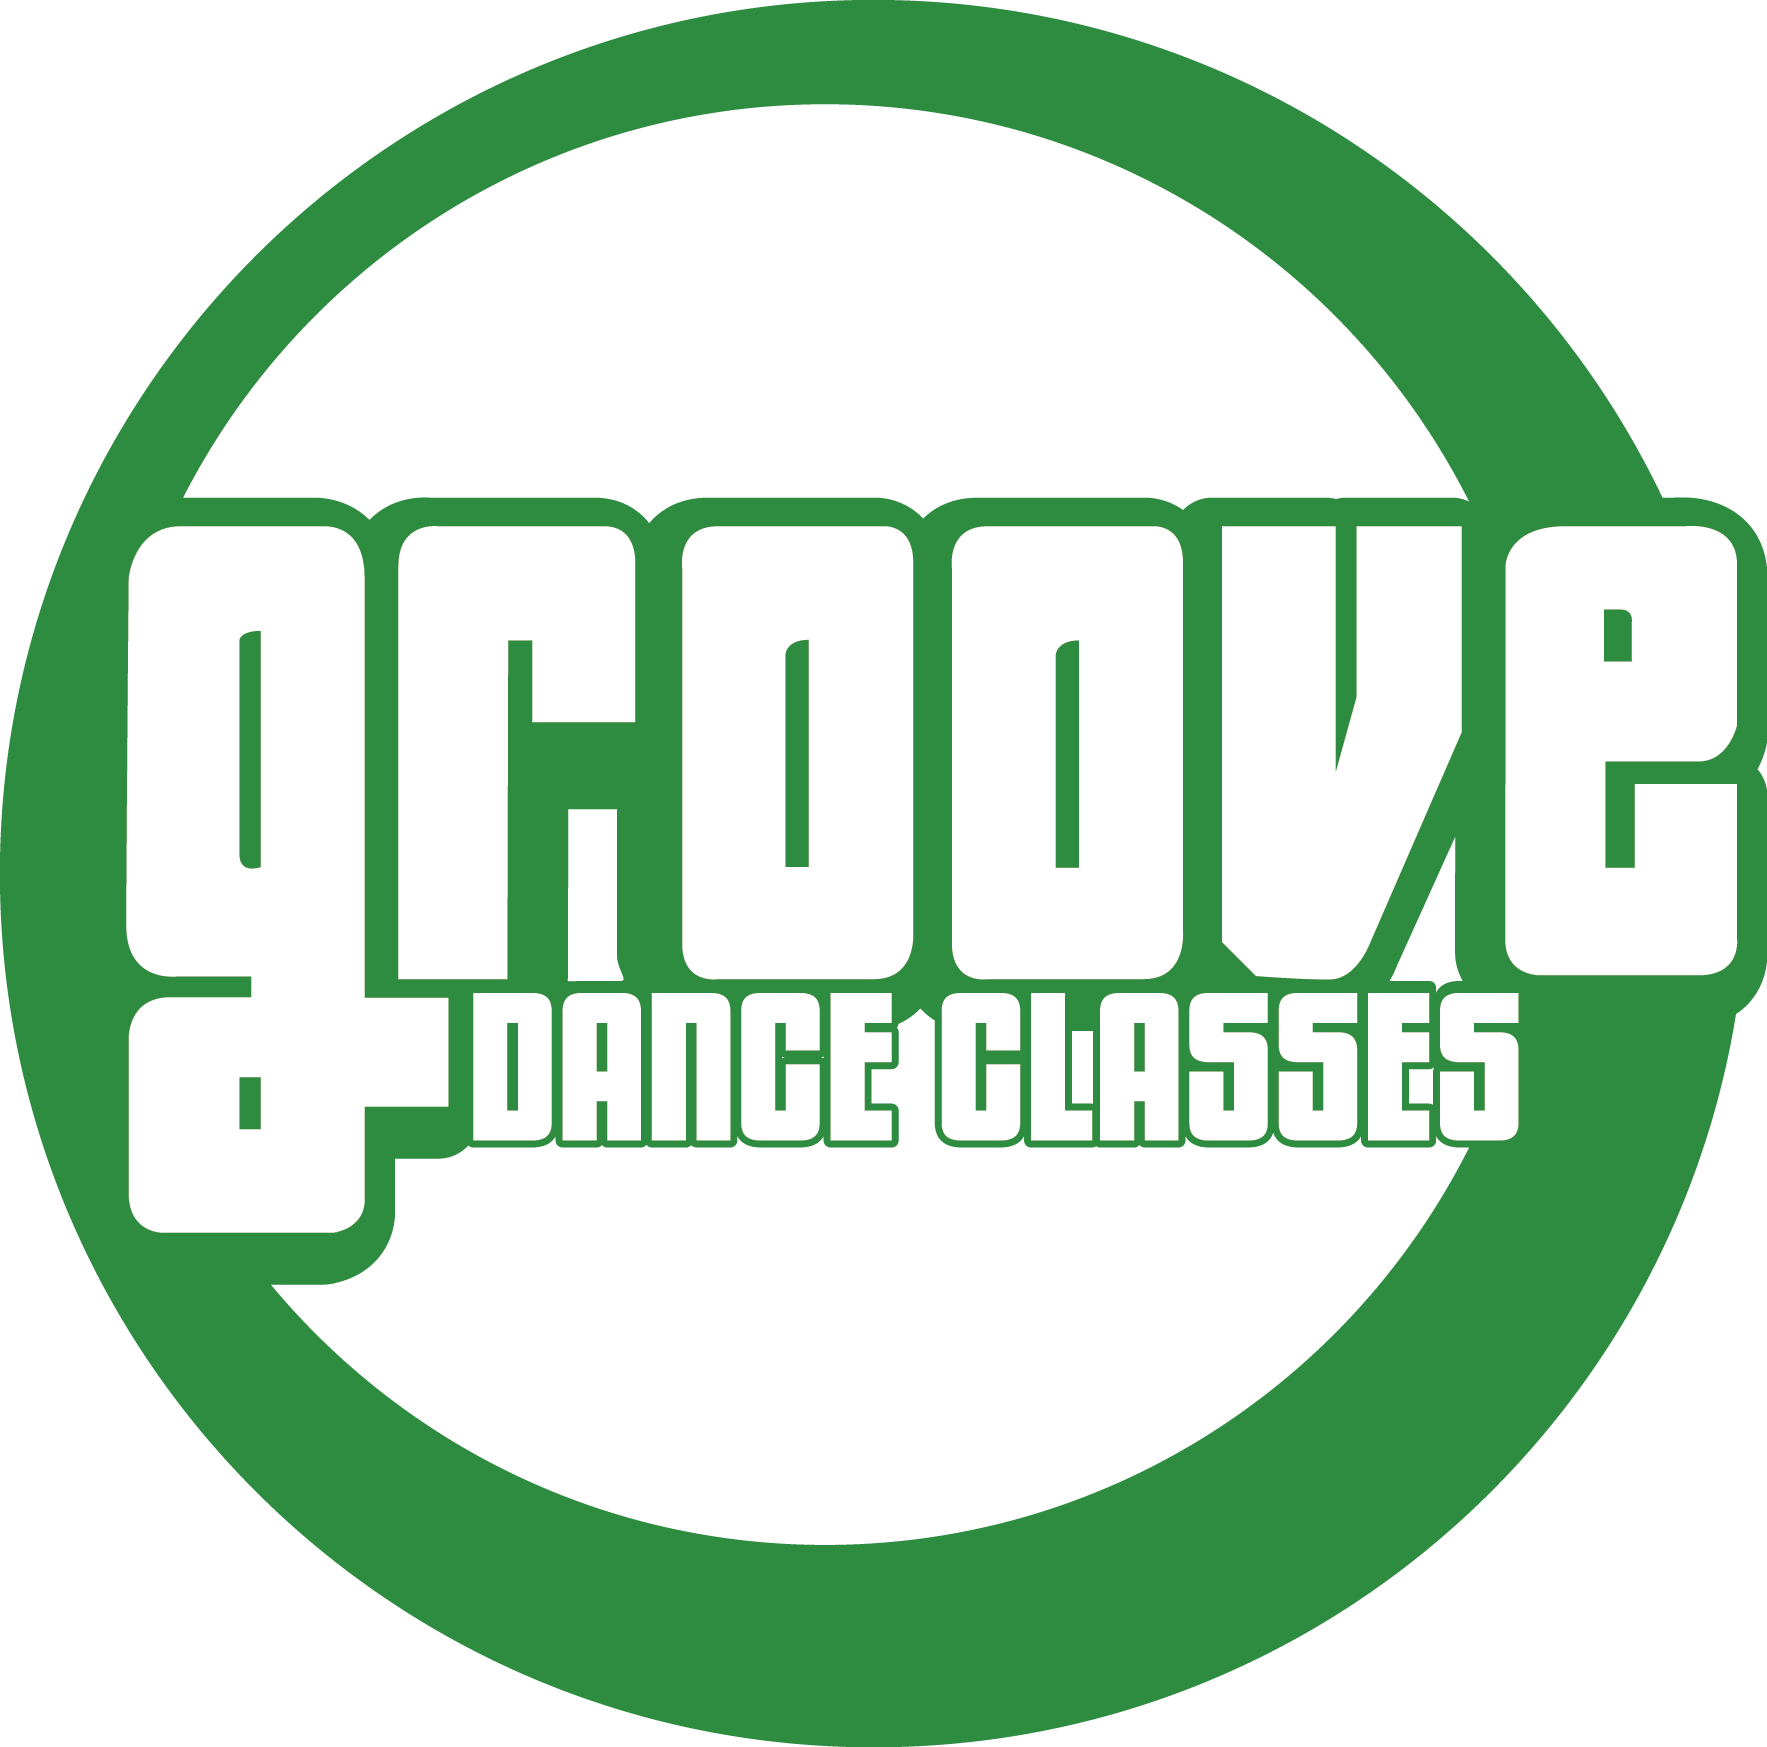 Groove Dance Classes - Frankfurt a.m.